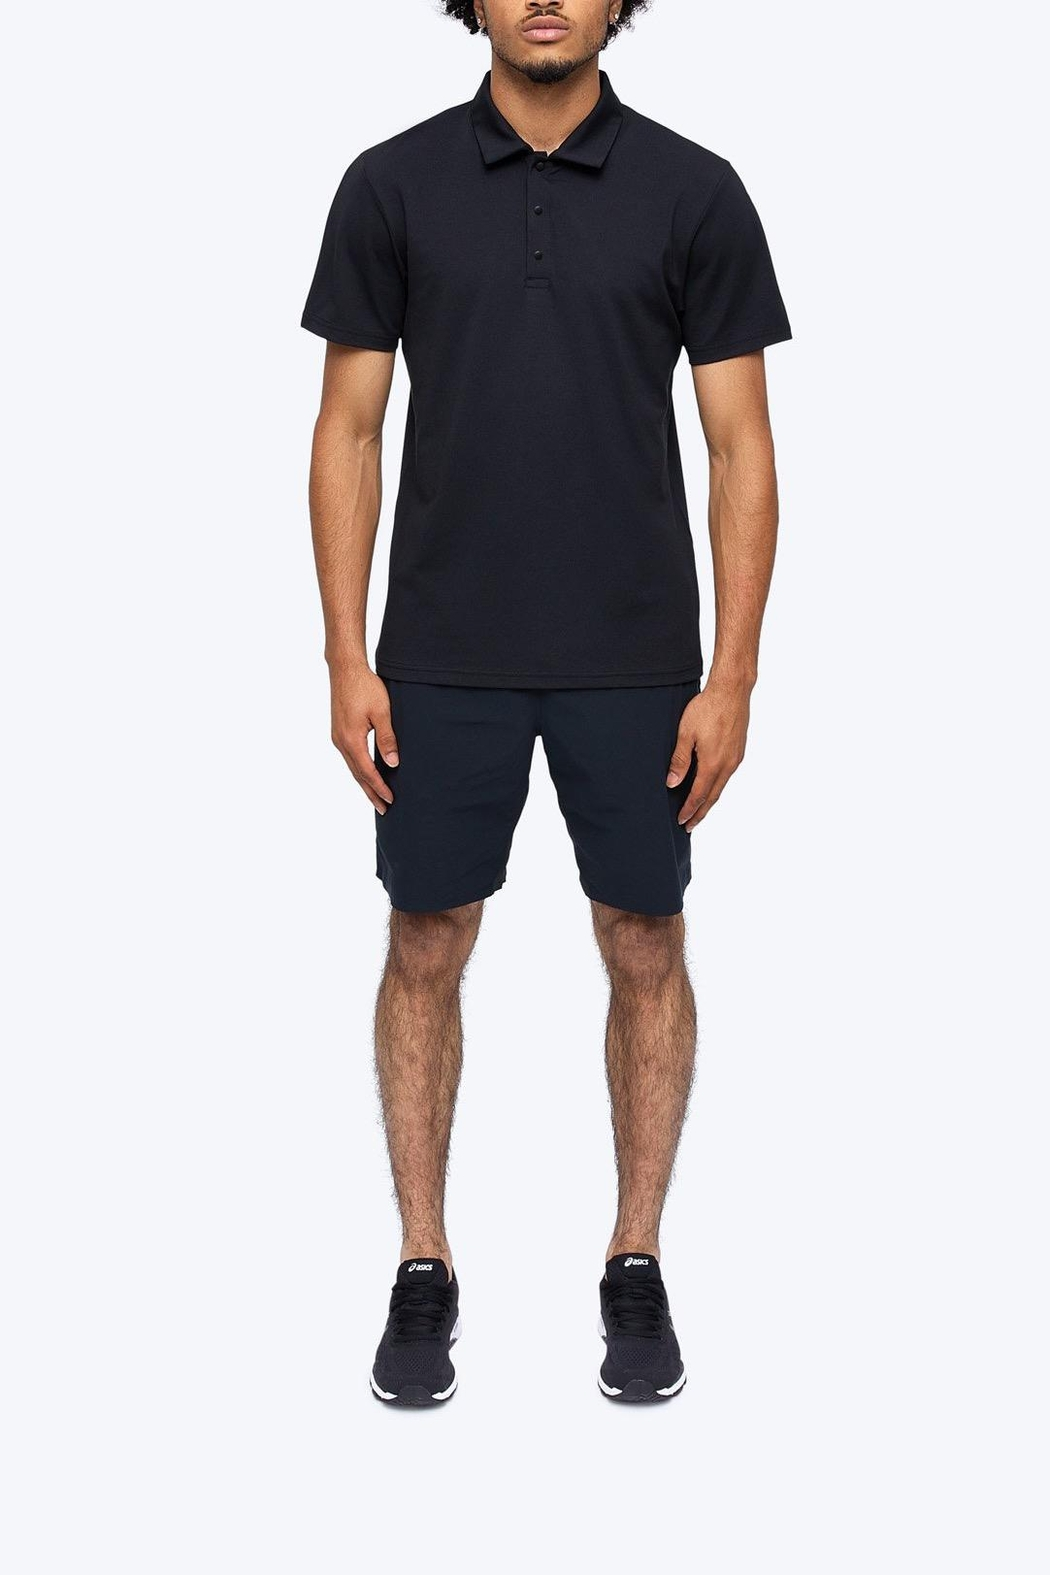 Reigning Champ Men's Polartec Delta Polo - Side Cropped Image